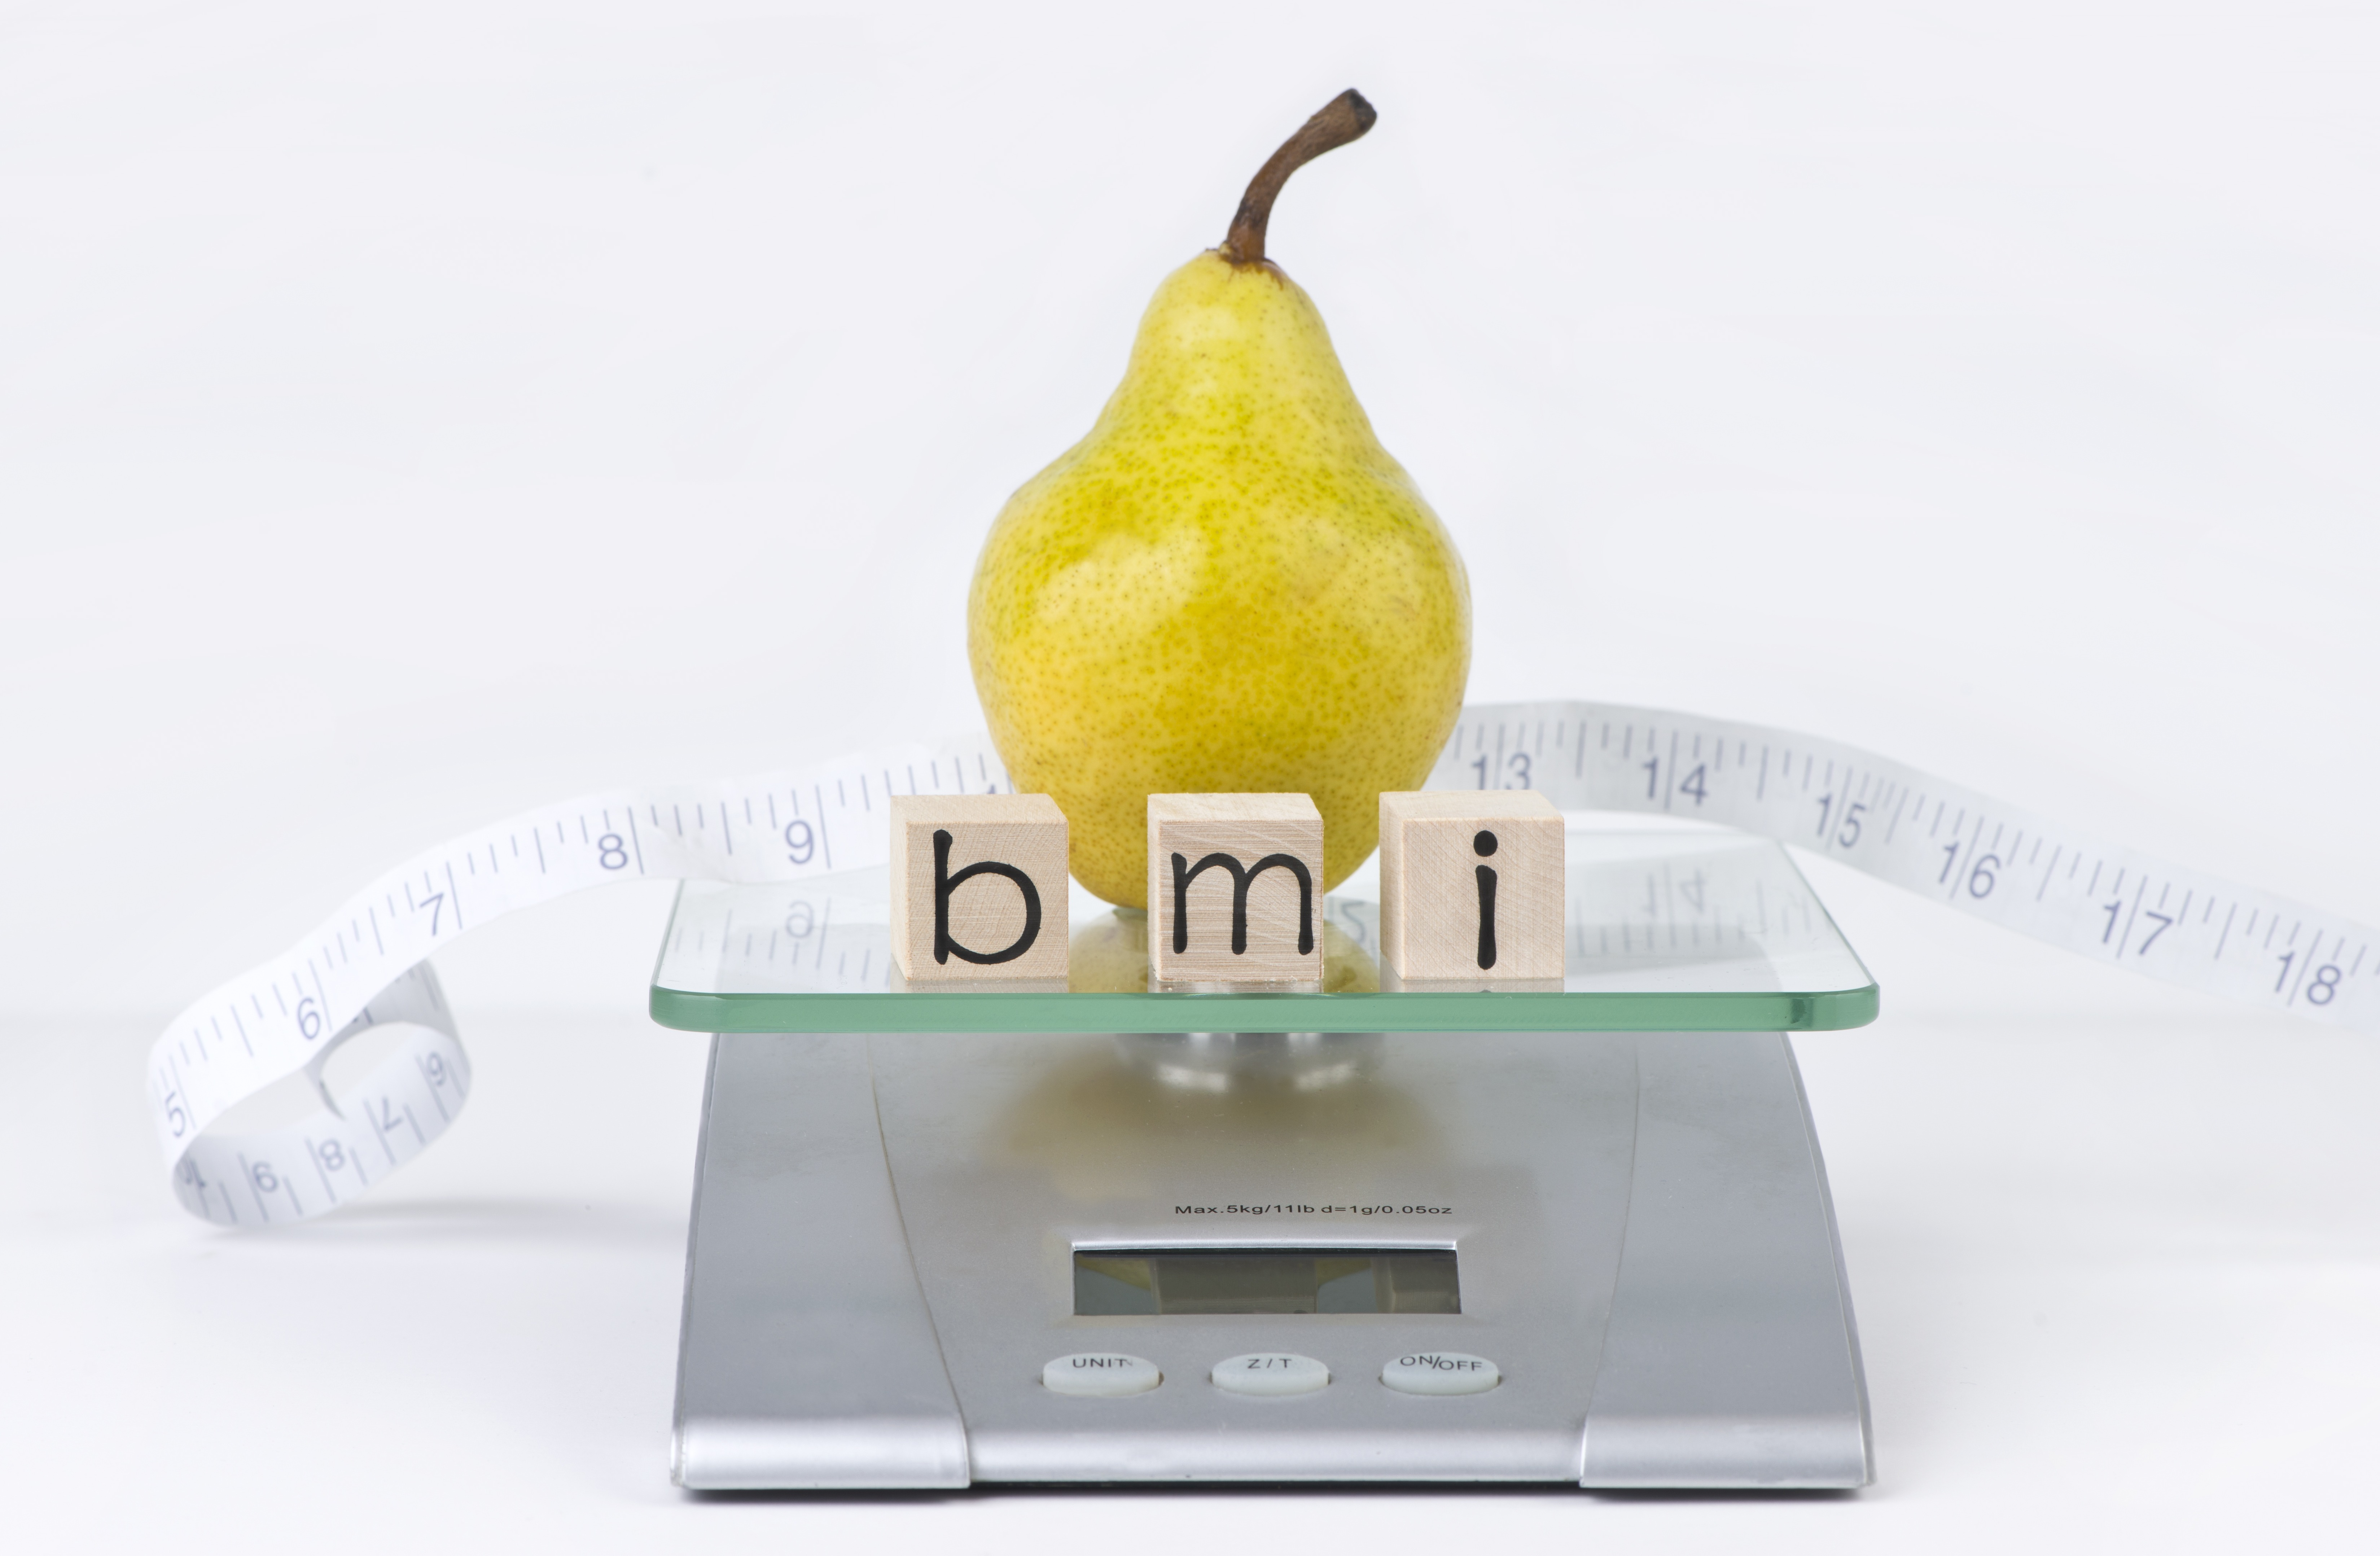 BMI: How do We Calculate a Healthy Weight?